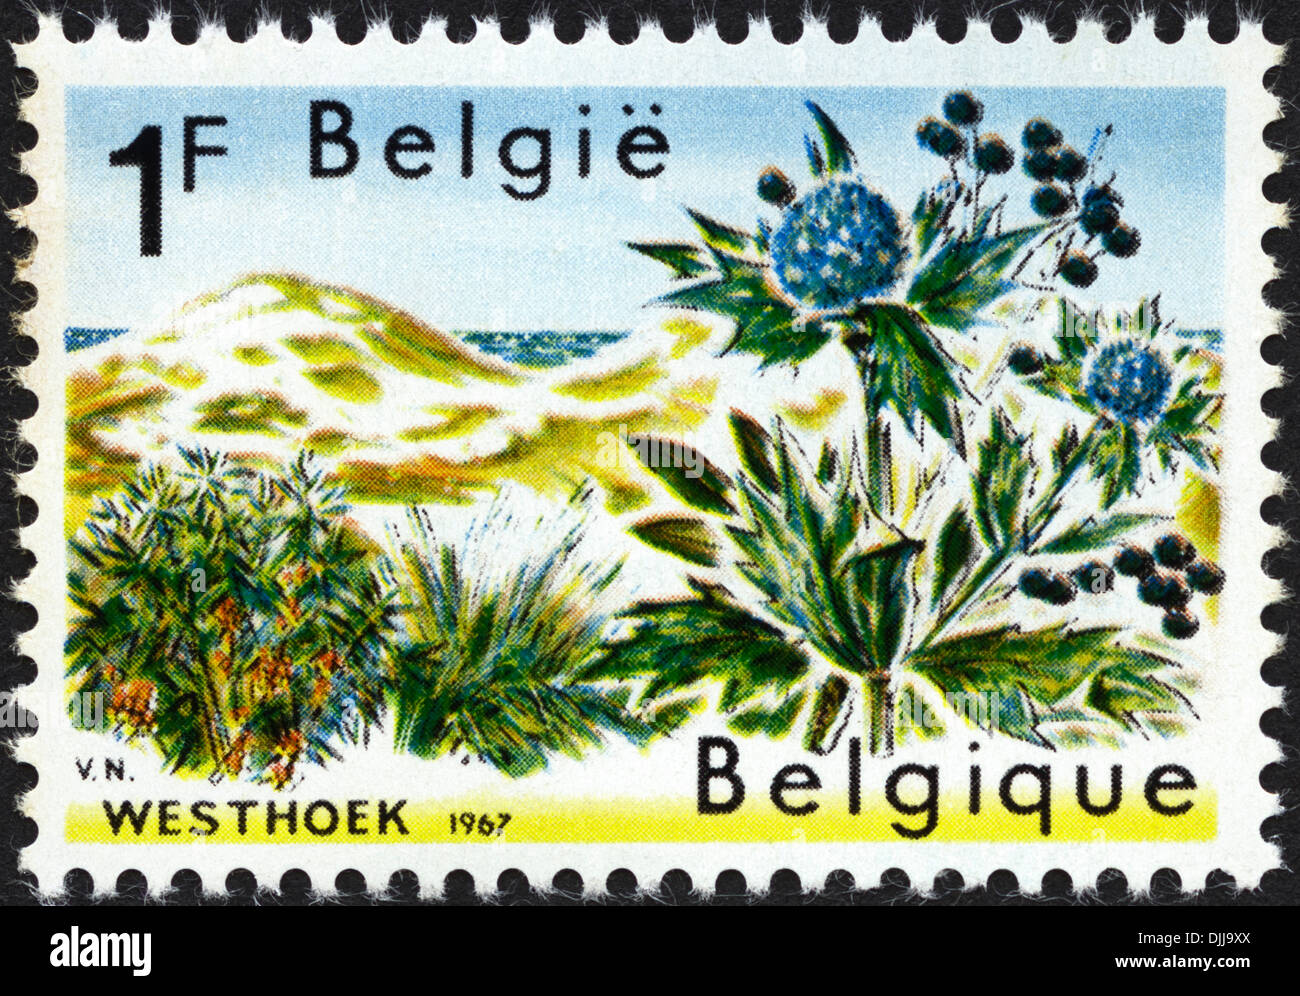 postage stamp Belgium 1F featuring Westhoek nature reserve issued 1967 - Stock Image